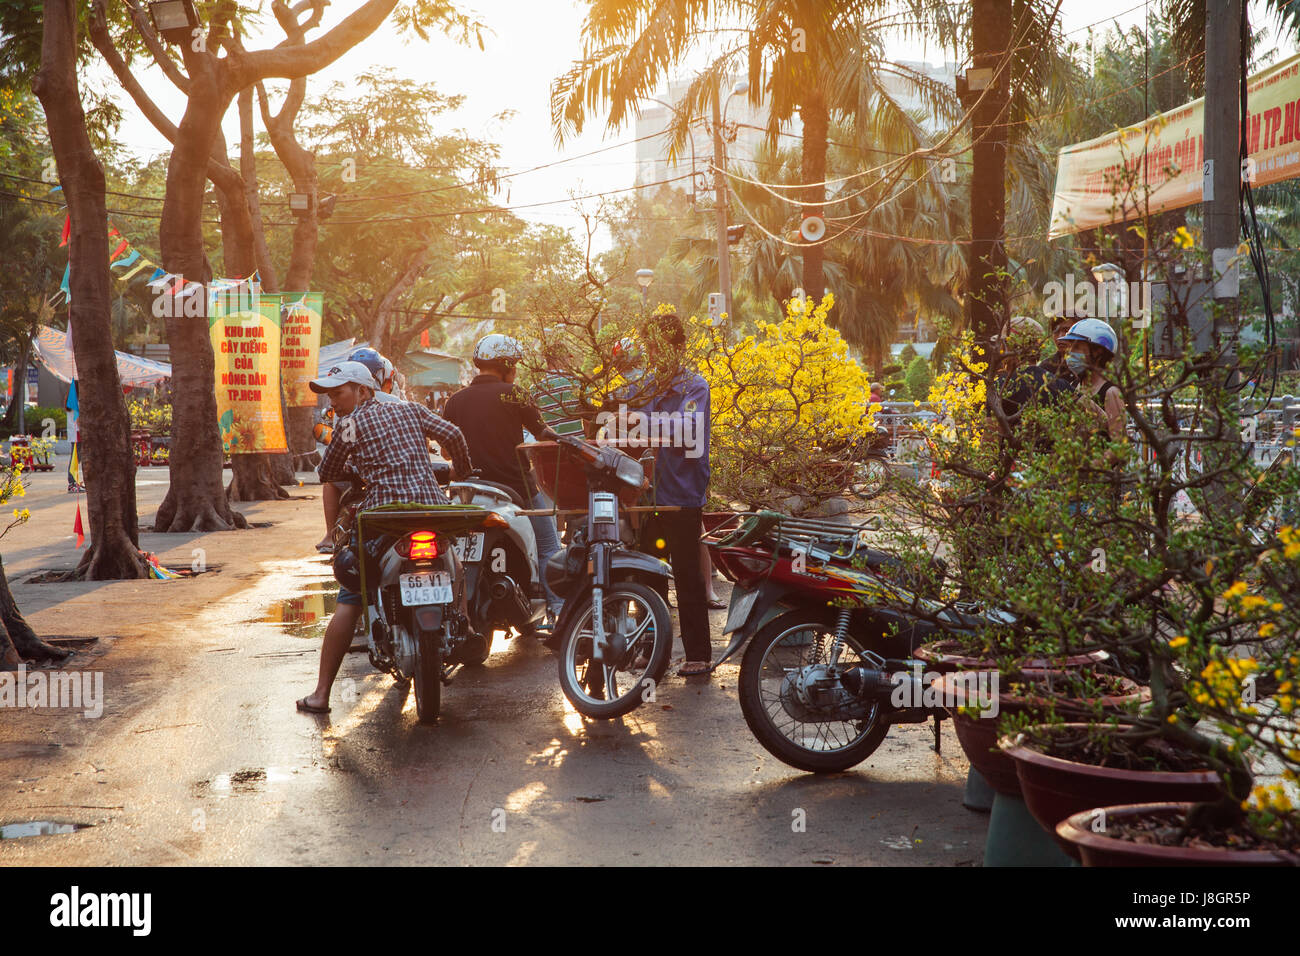 Ho Chi Minh City, Vietnam - February 06, 2016: People buiying holiday trees at the street market during Tet or Lunar - Stock Image